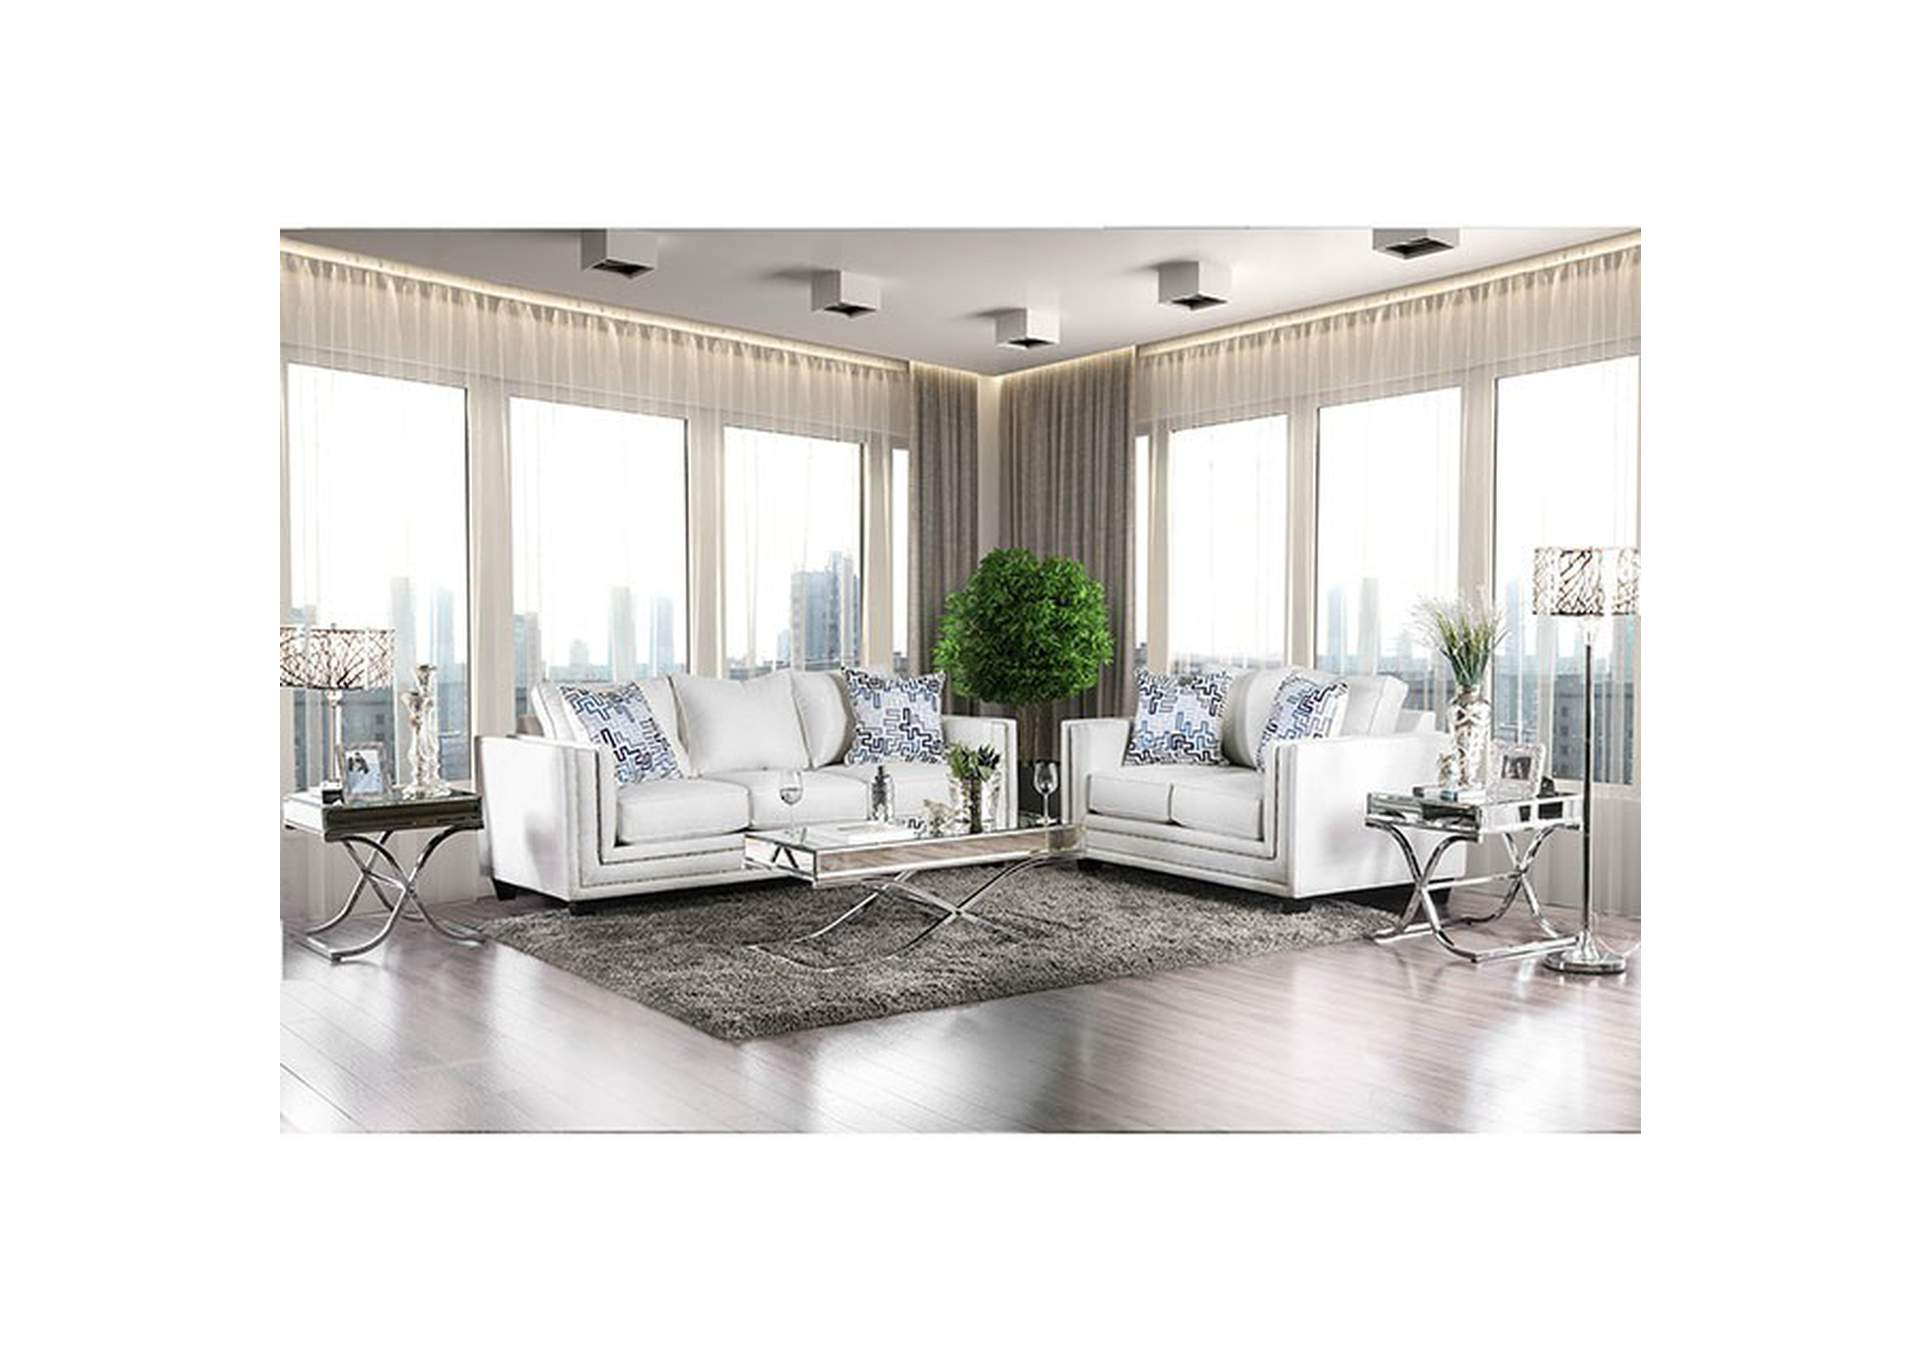 Ilse Off-White Sofa Market Furniture - Paterson, NJ